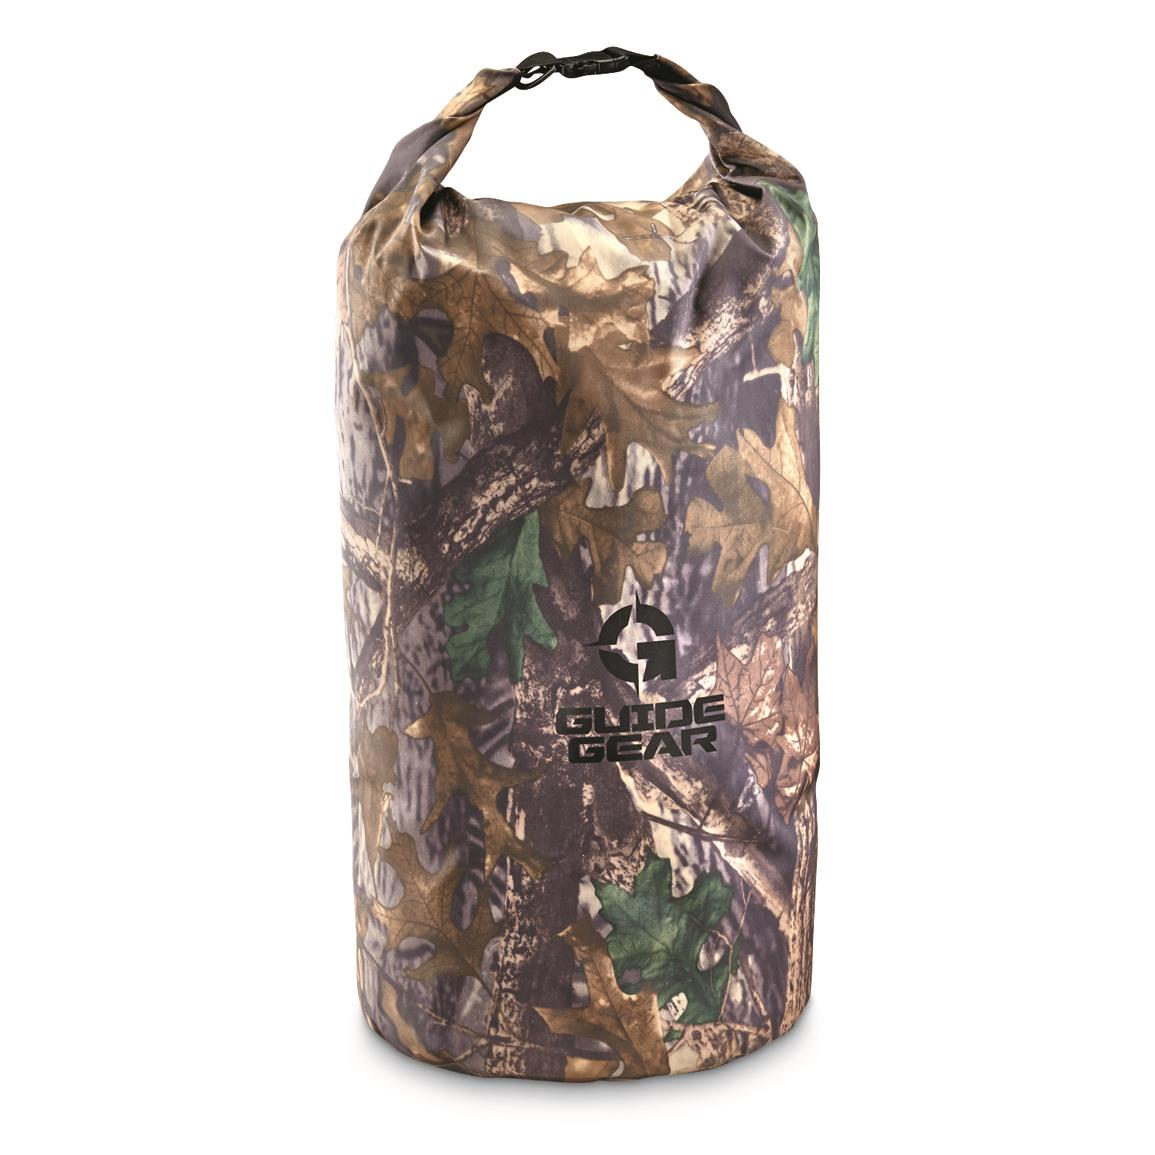 Guide Gear Roll-Top Waterproof Dry Bag, 60 Liter, Camo